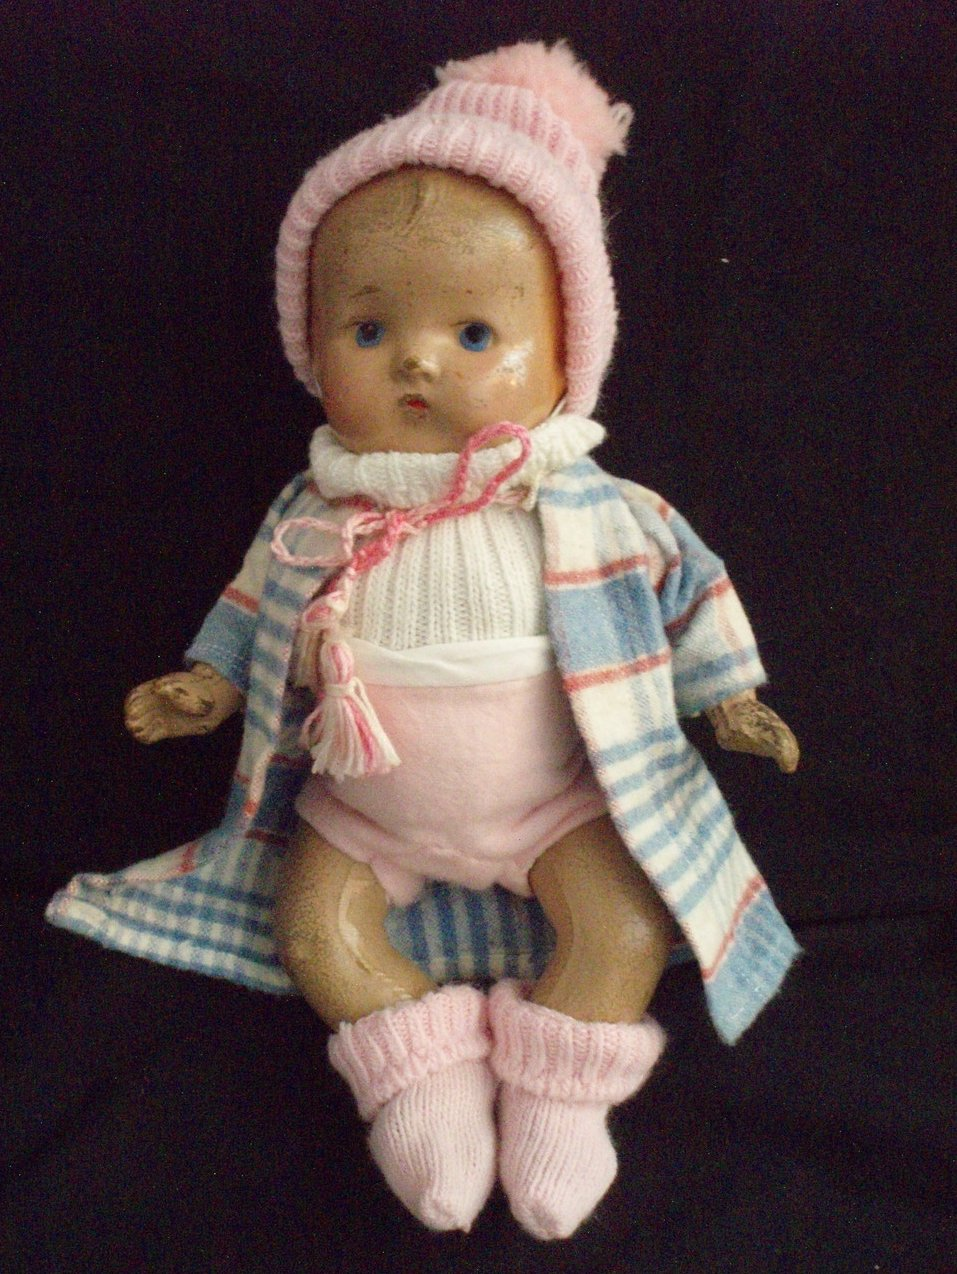 1920 Composition Baby Doll